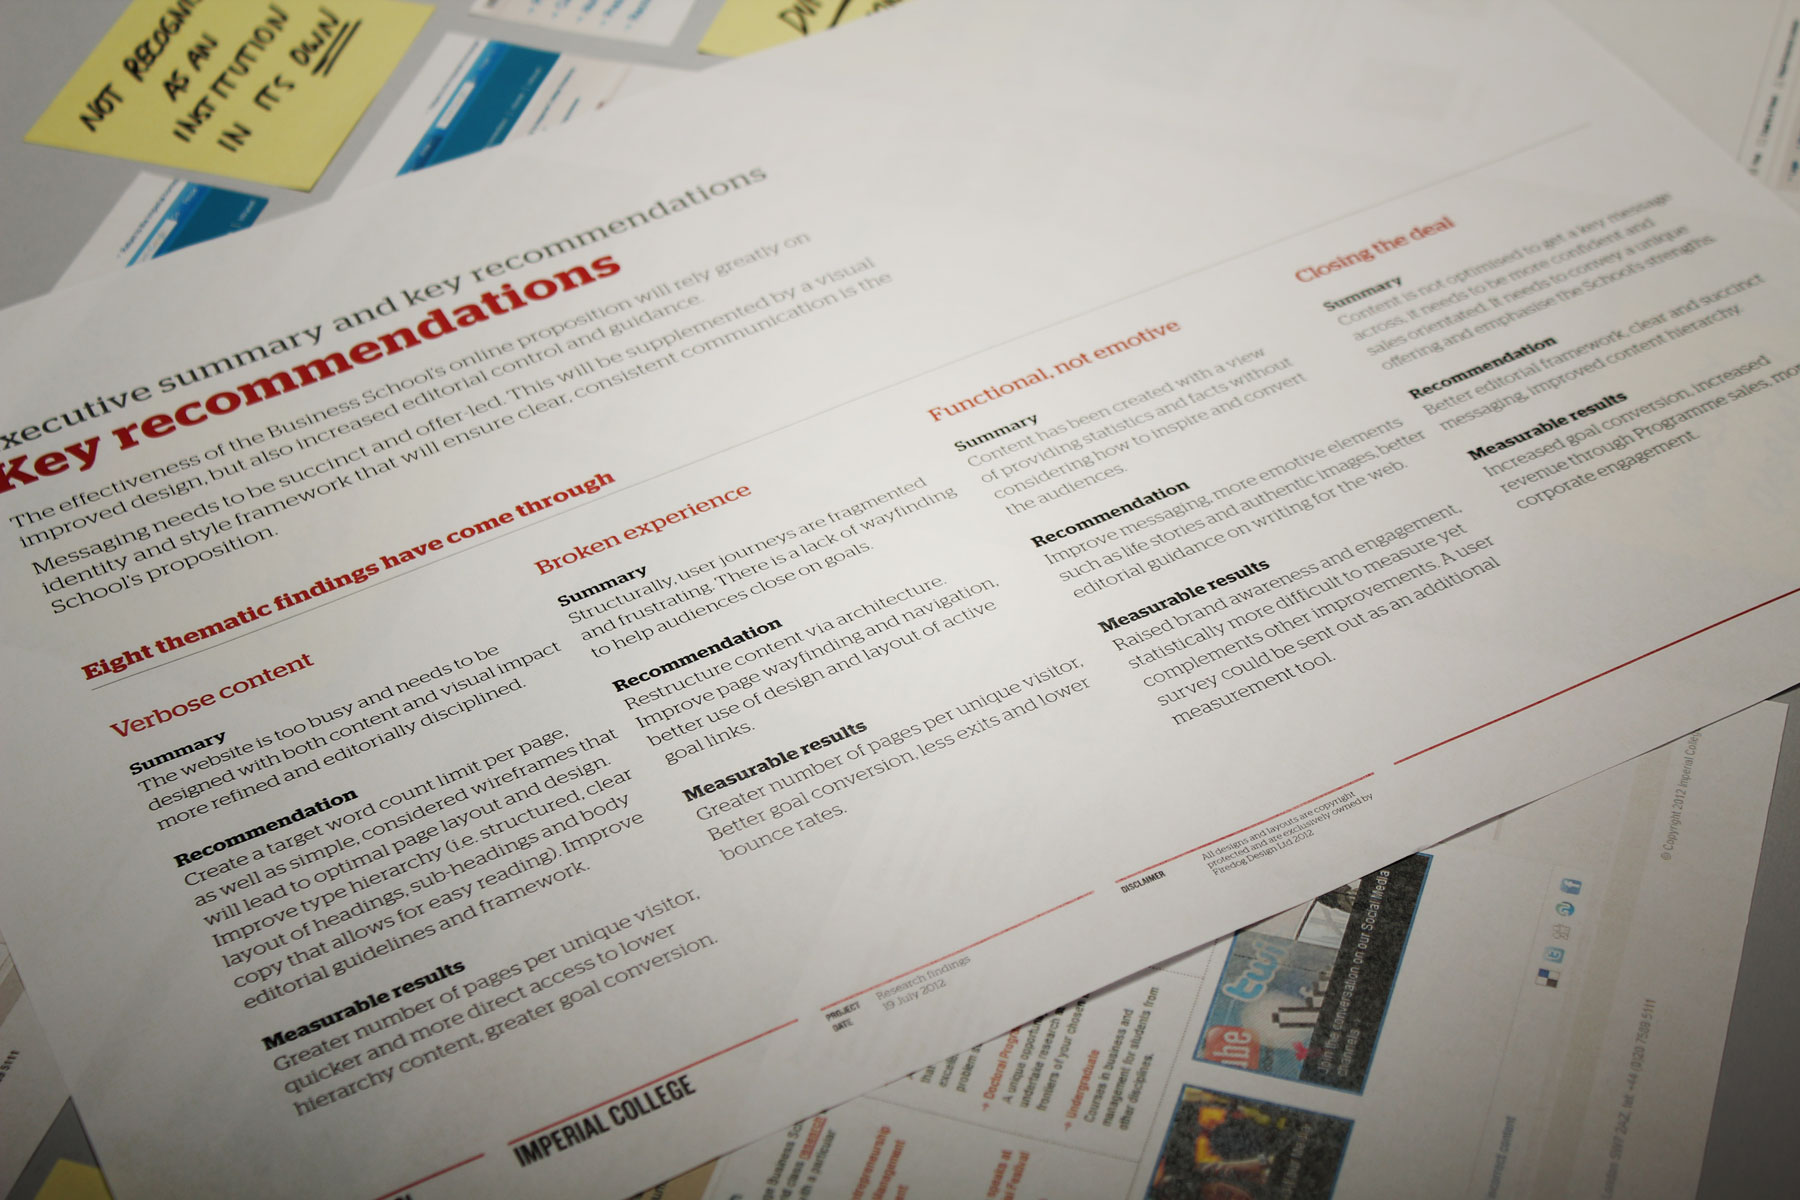 We collated our comments into a key recommendations document. These recommendations became the focus of our redesign